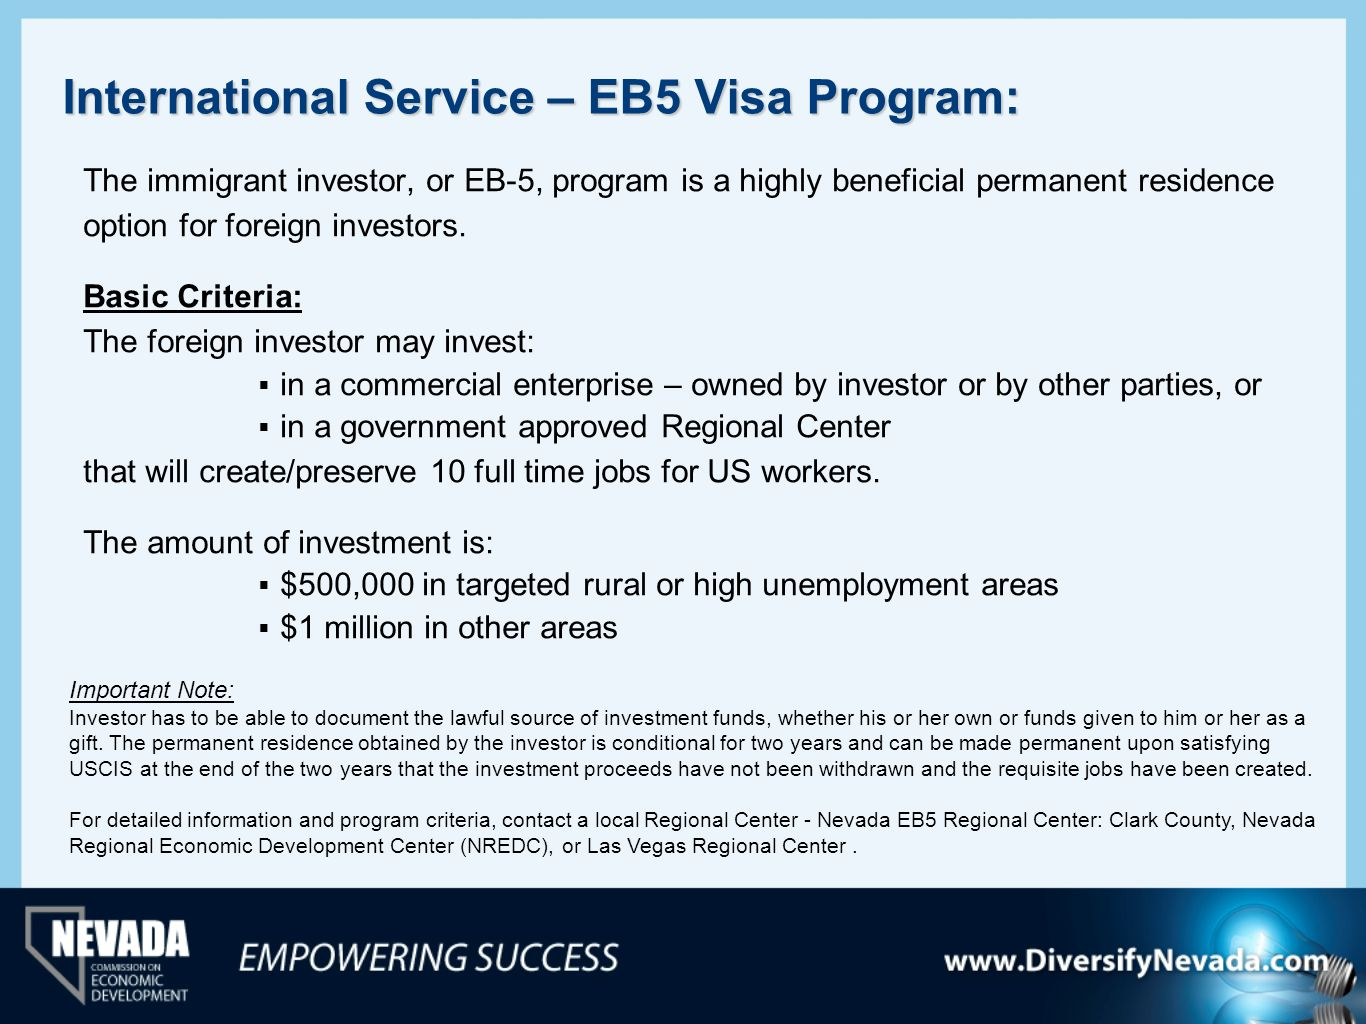 International Service – EB5 Visa Program: